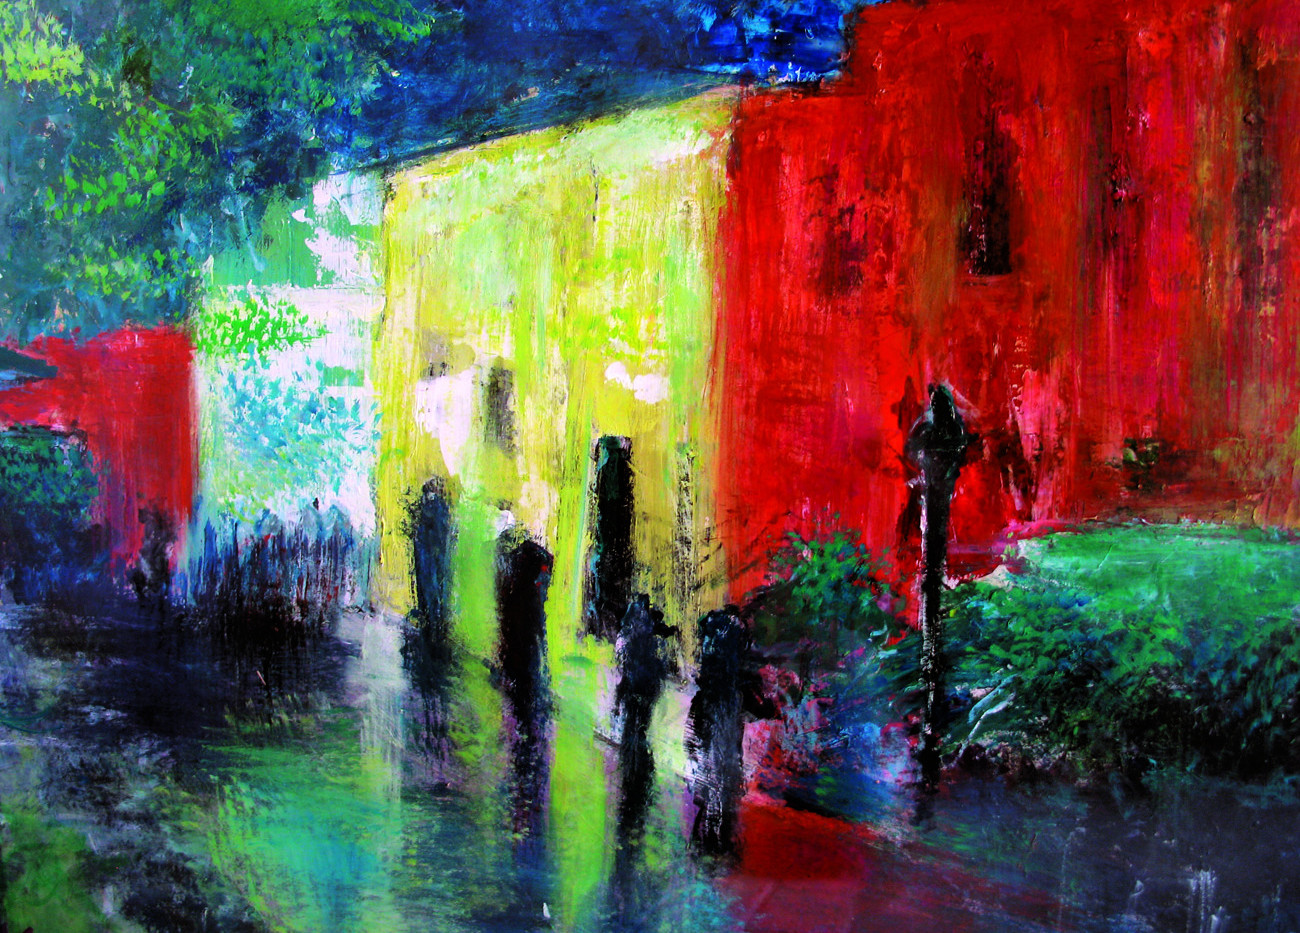 Nuha Assad Rainyday Oil on canvas 50 x 70 cm 2005